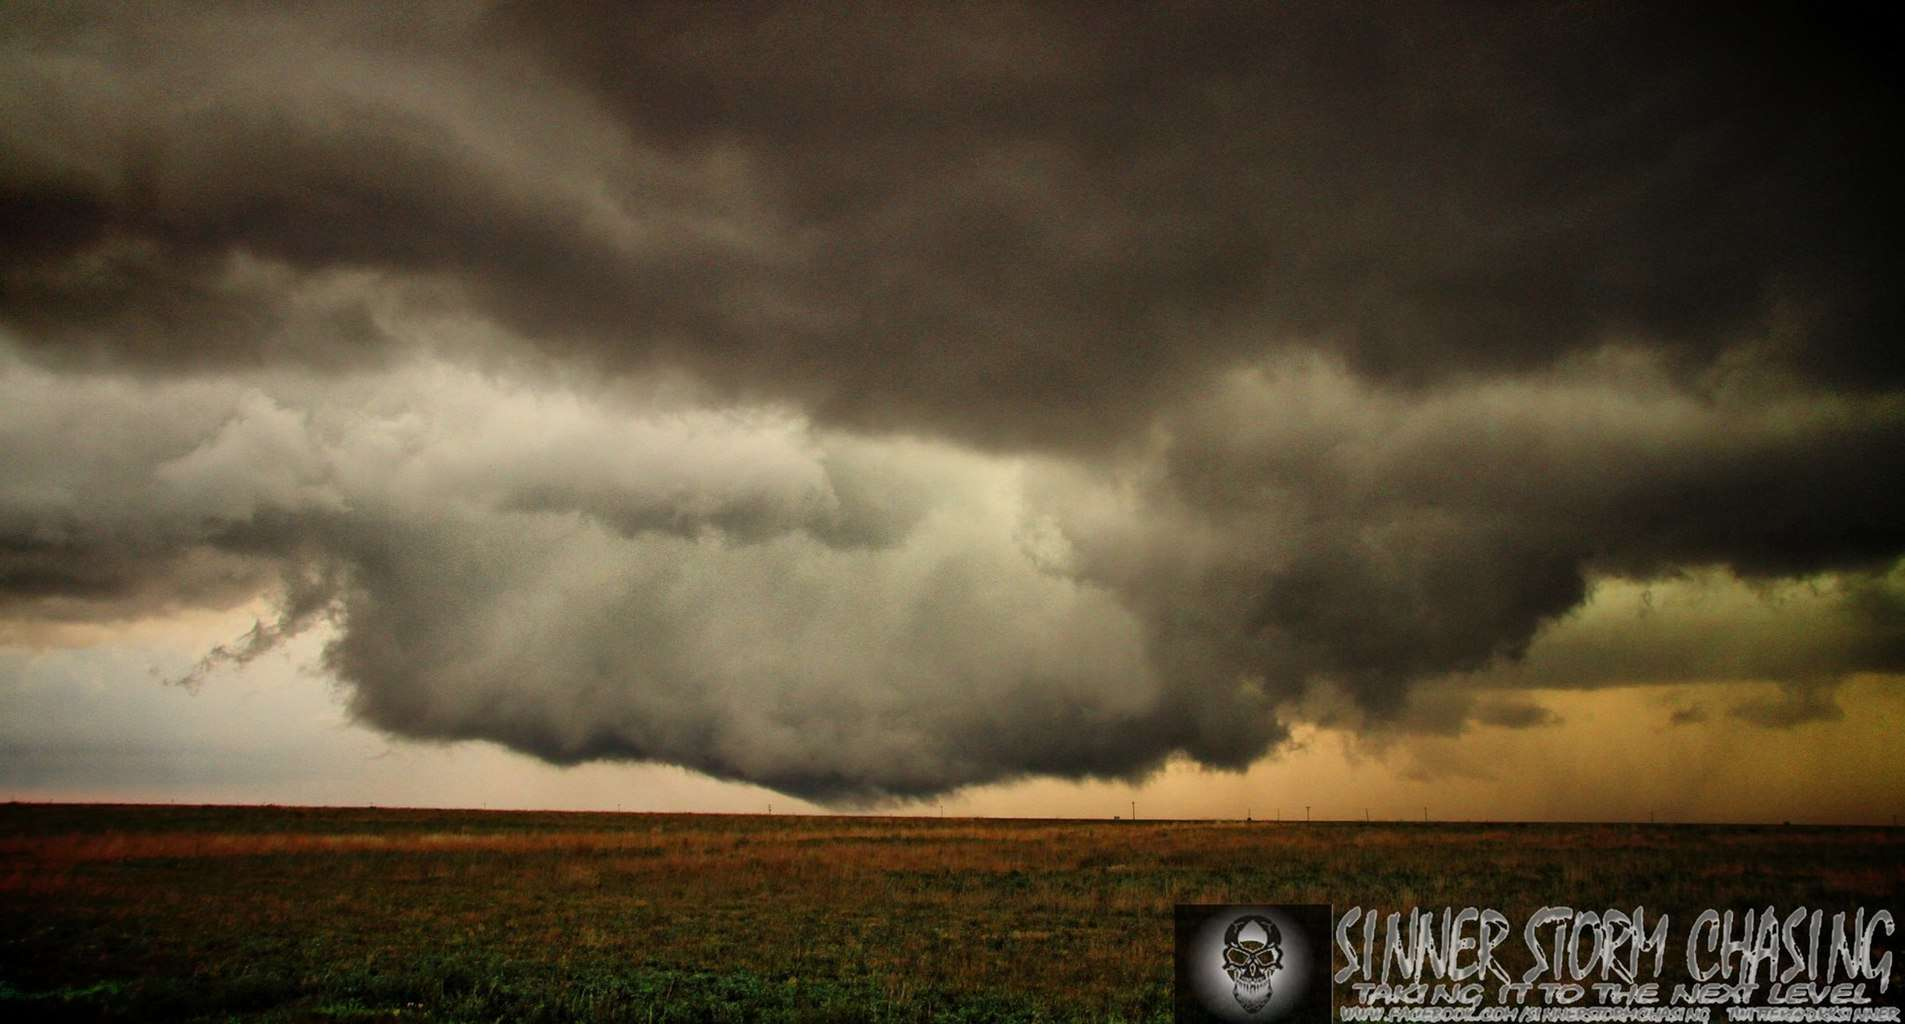 ground scraping wall cloud 12 October 2012 Plainview TX